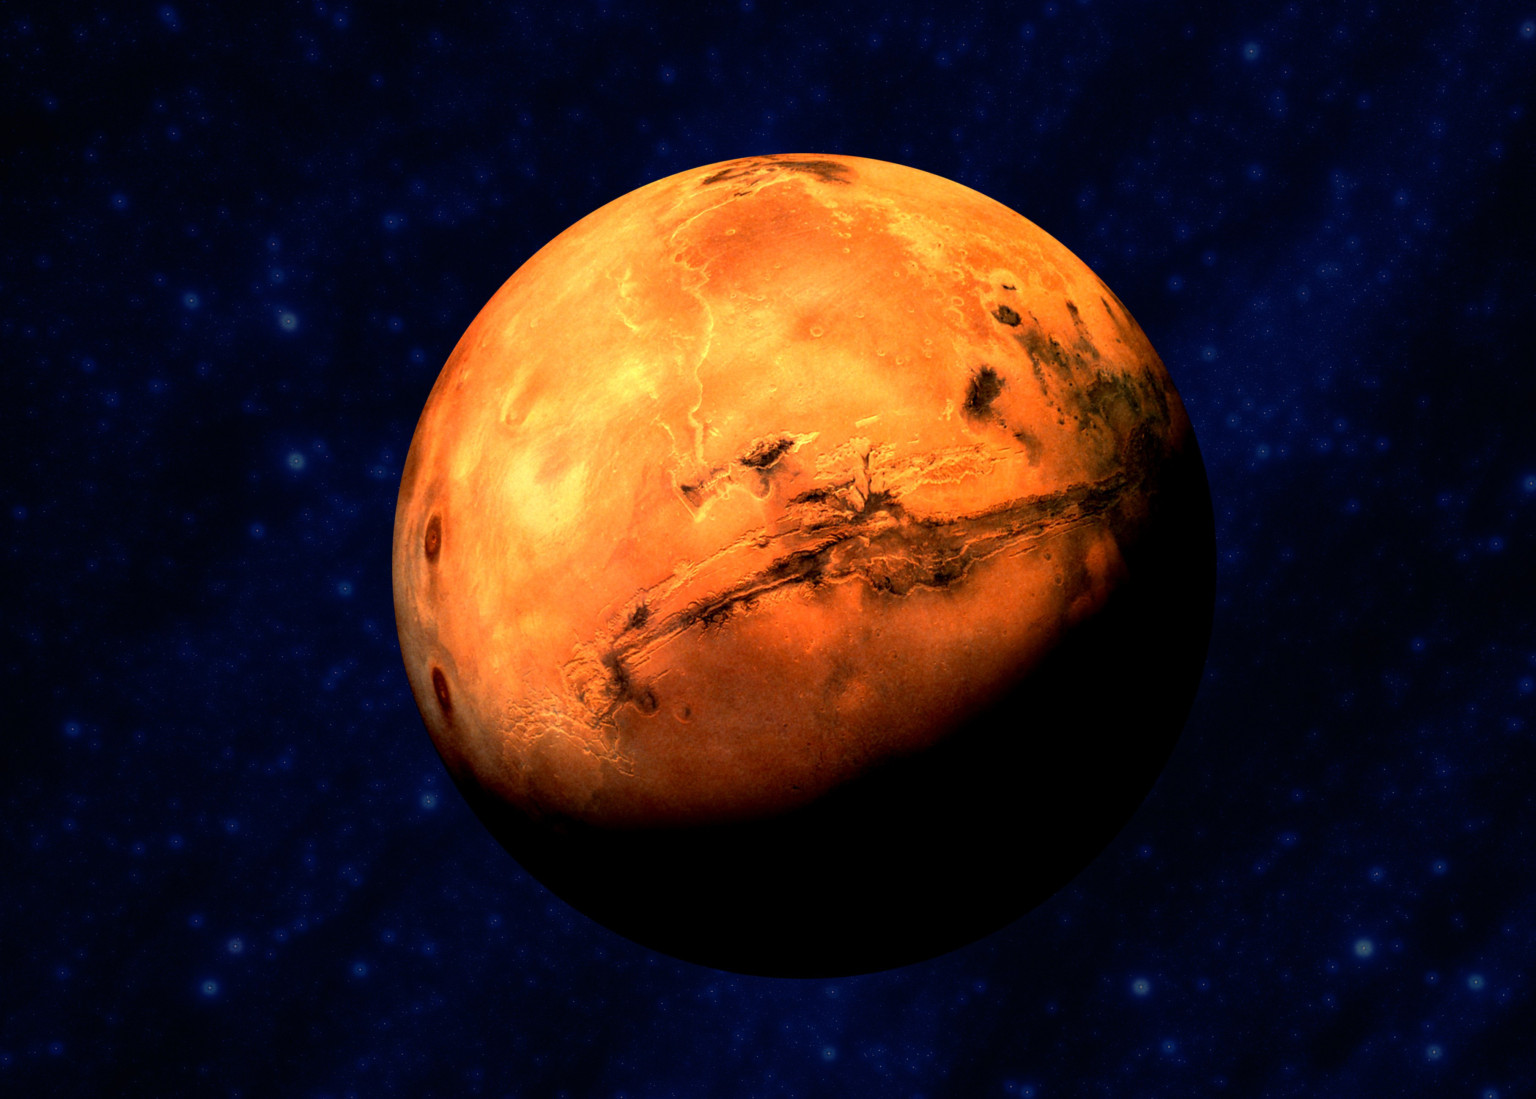 planet mars pictures nasa - photo #25